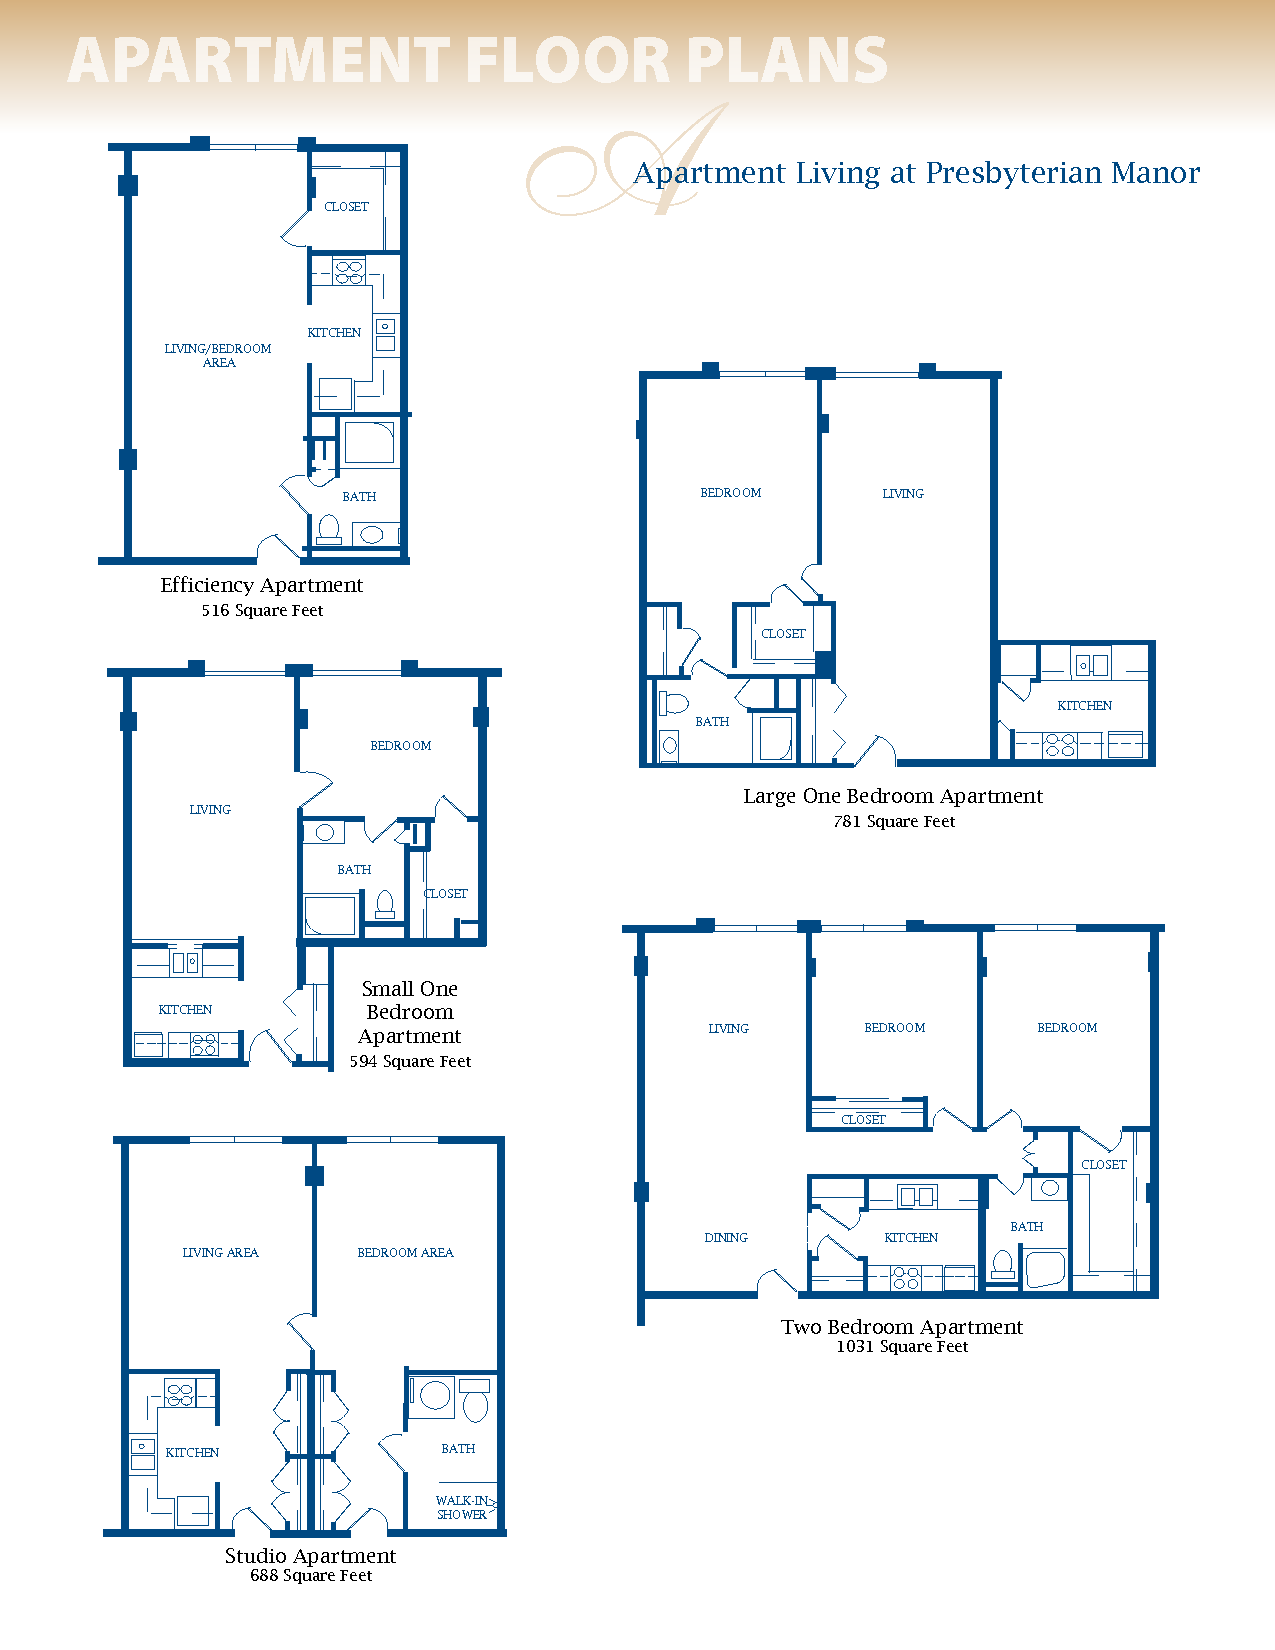 Studio Apartment Layout Plans cool studio apartment layout ideas maximizing limited available